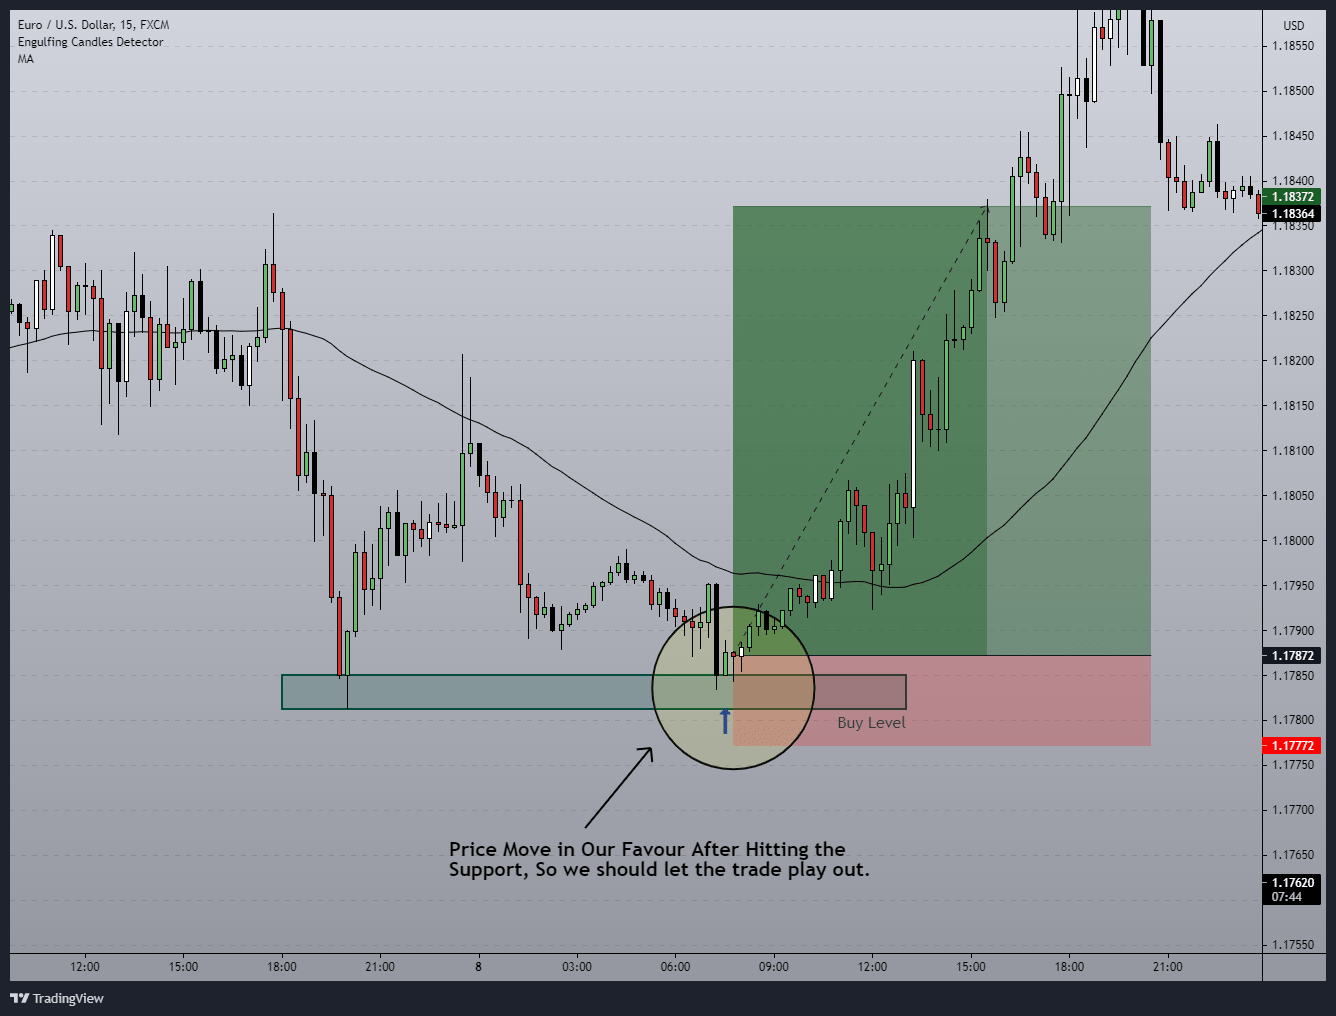 Holding the trade which move in your favors